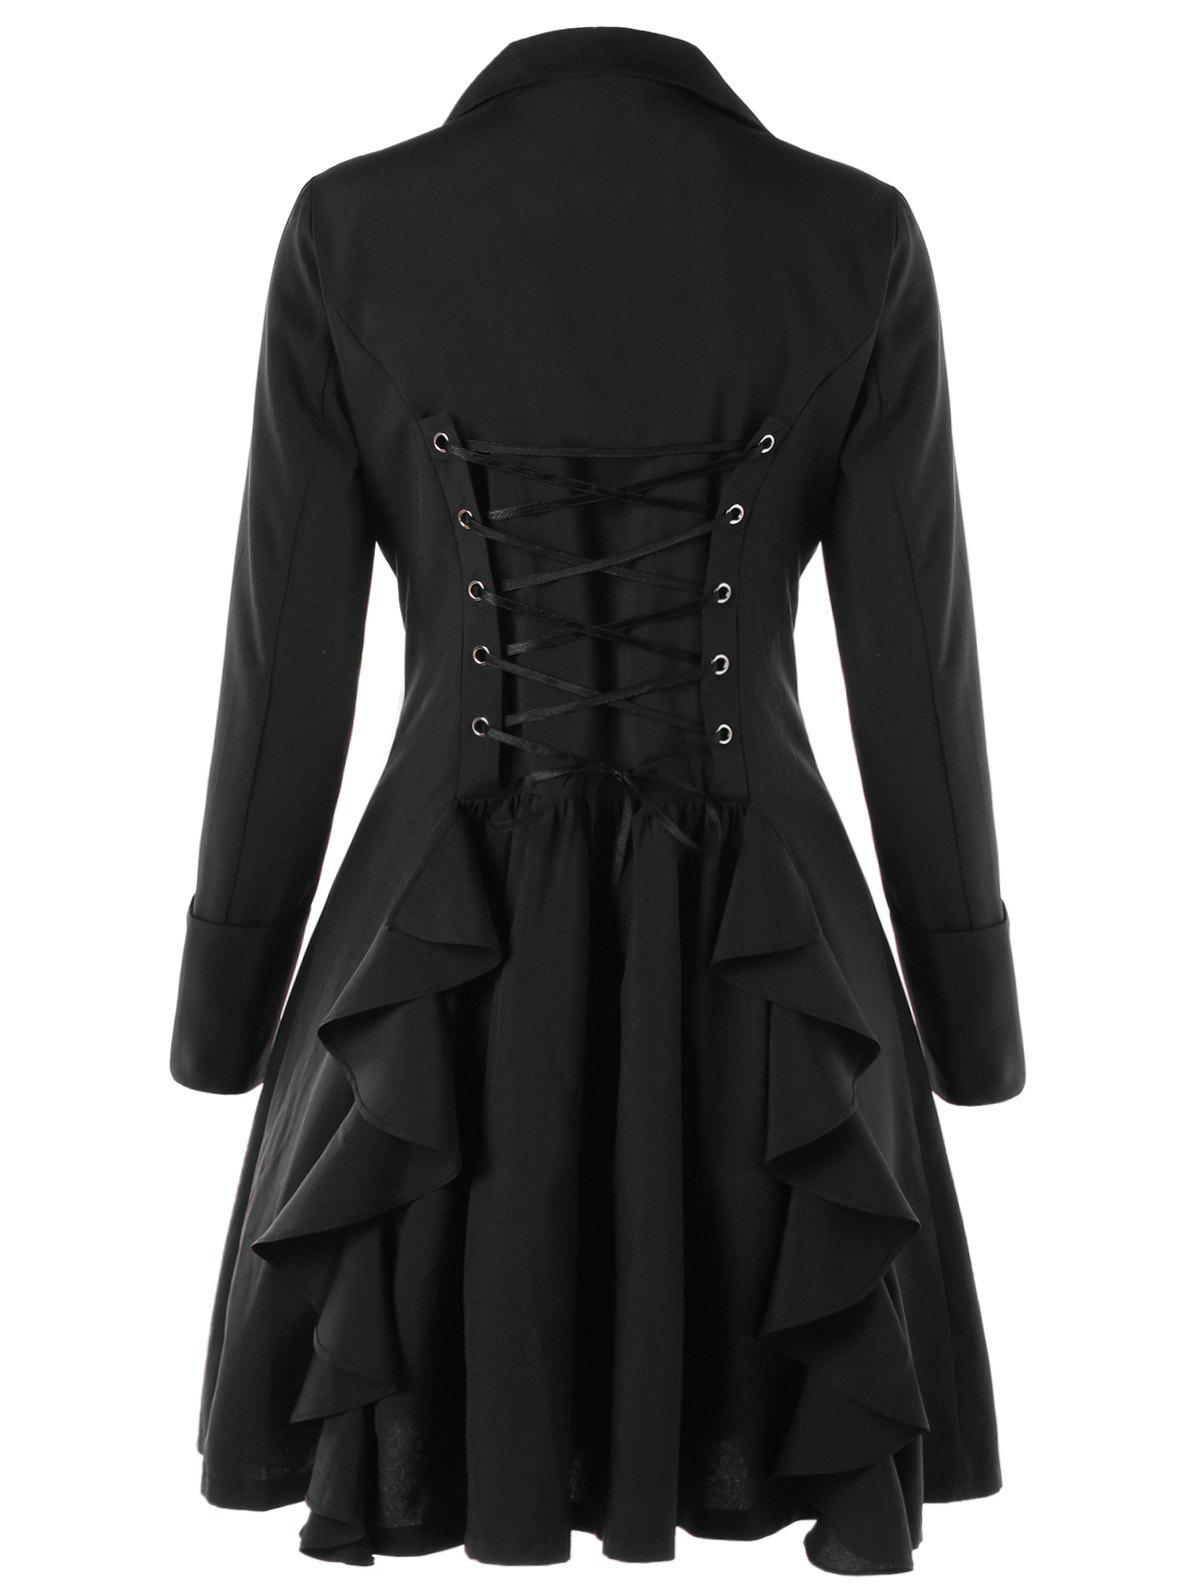 Double Breasted Lace Up Trench CoatWOMEN<br><br>Size: M; Color: BLACK; Clothes Type: Trench; Material: Polyester; Type: High Waist; Shirt Length: Long; Sleeve Length: Full; Collar: Notched Collar; Pattern Type: Solid; Style: Gothic; Season: Fall,Spring; Weight: 0.4000kg; Package Contents: 1 x Trench Coat;